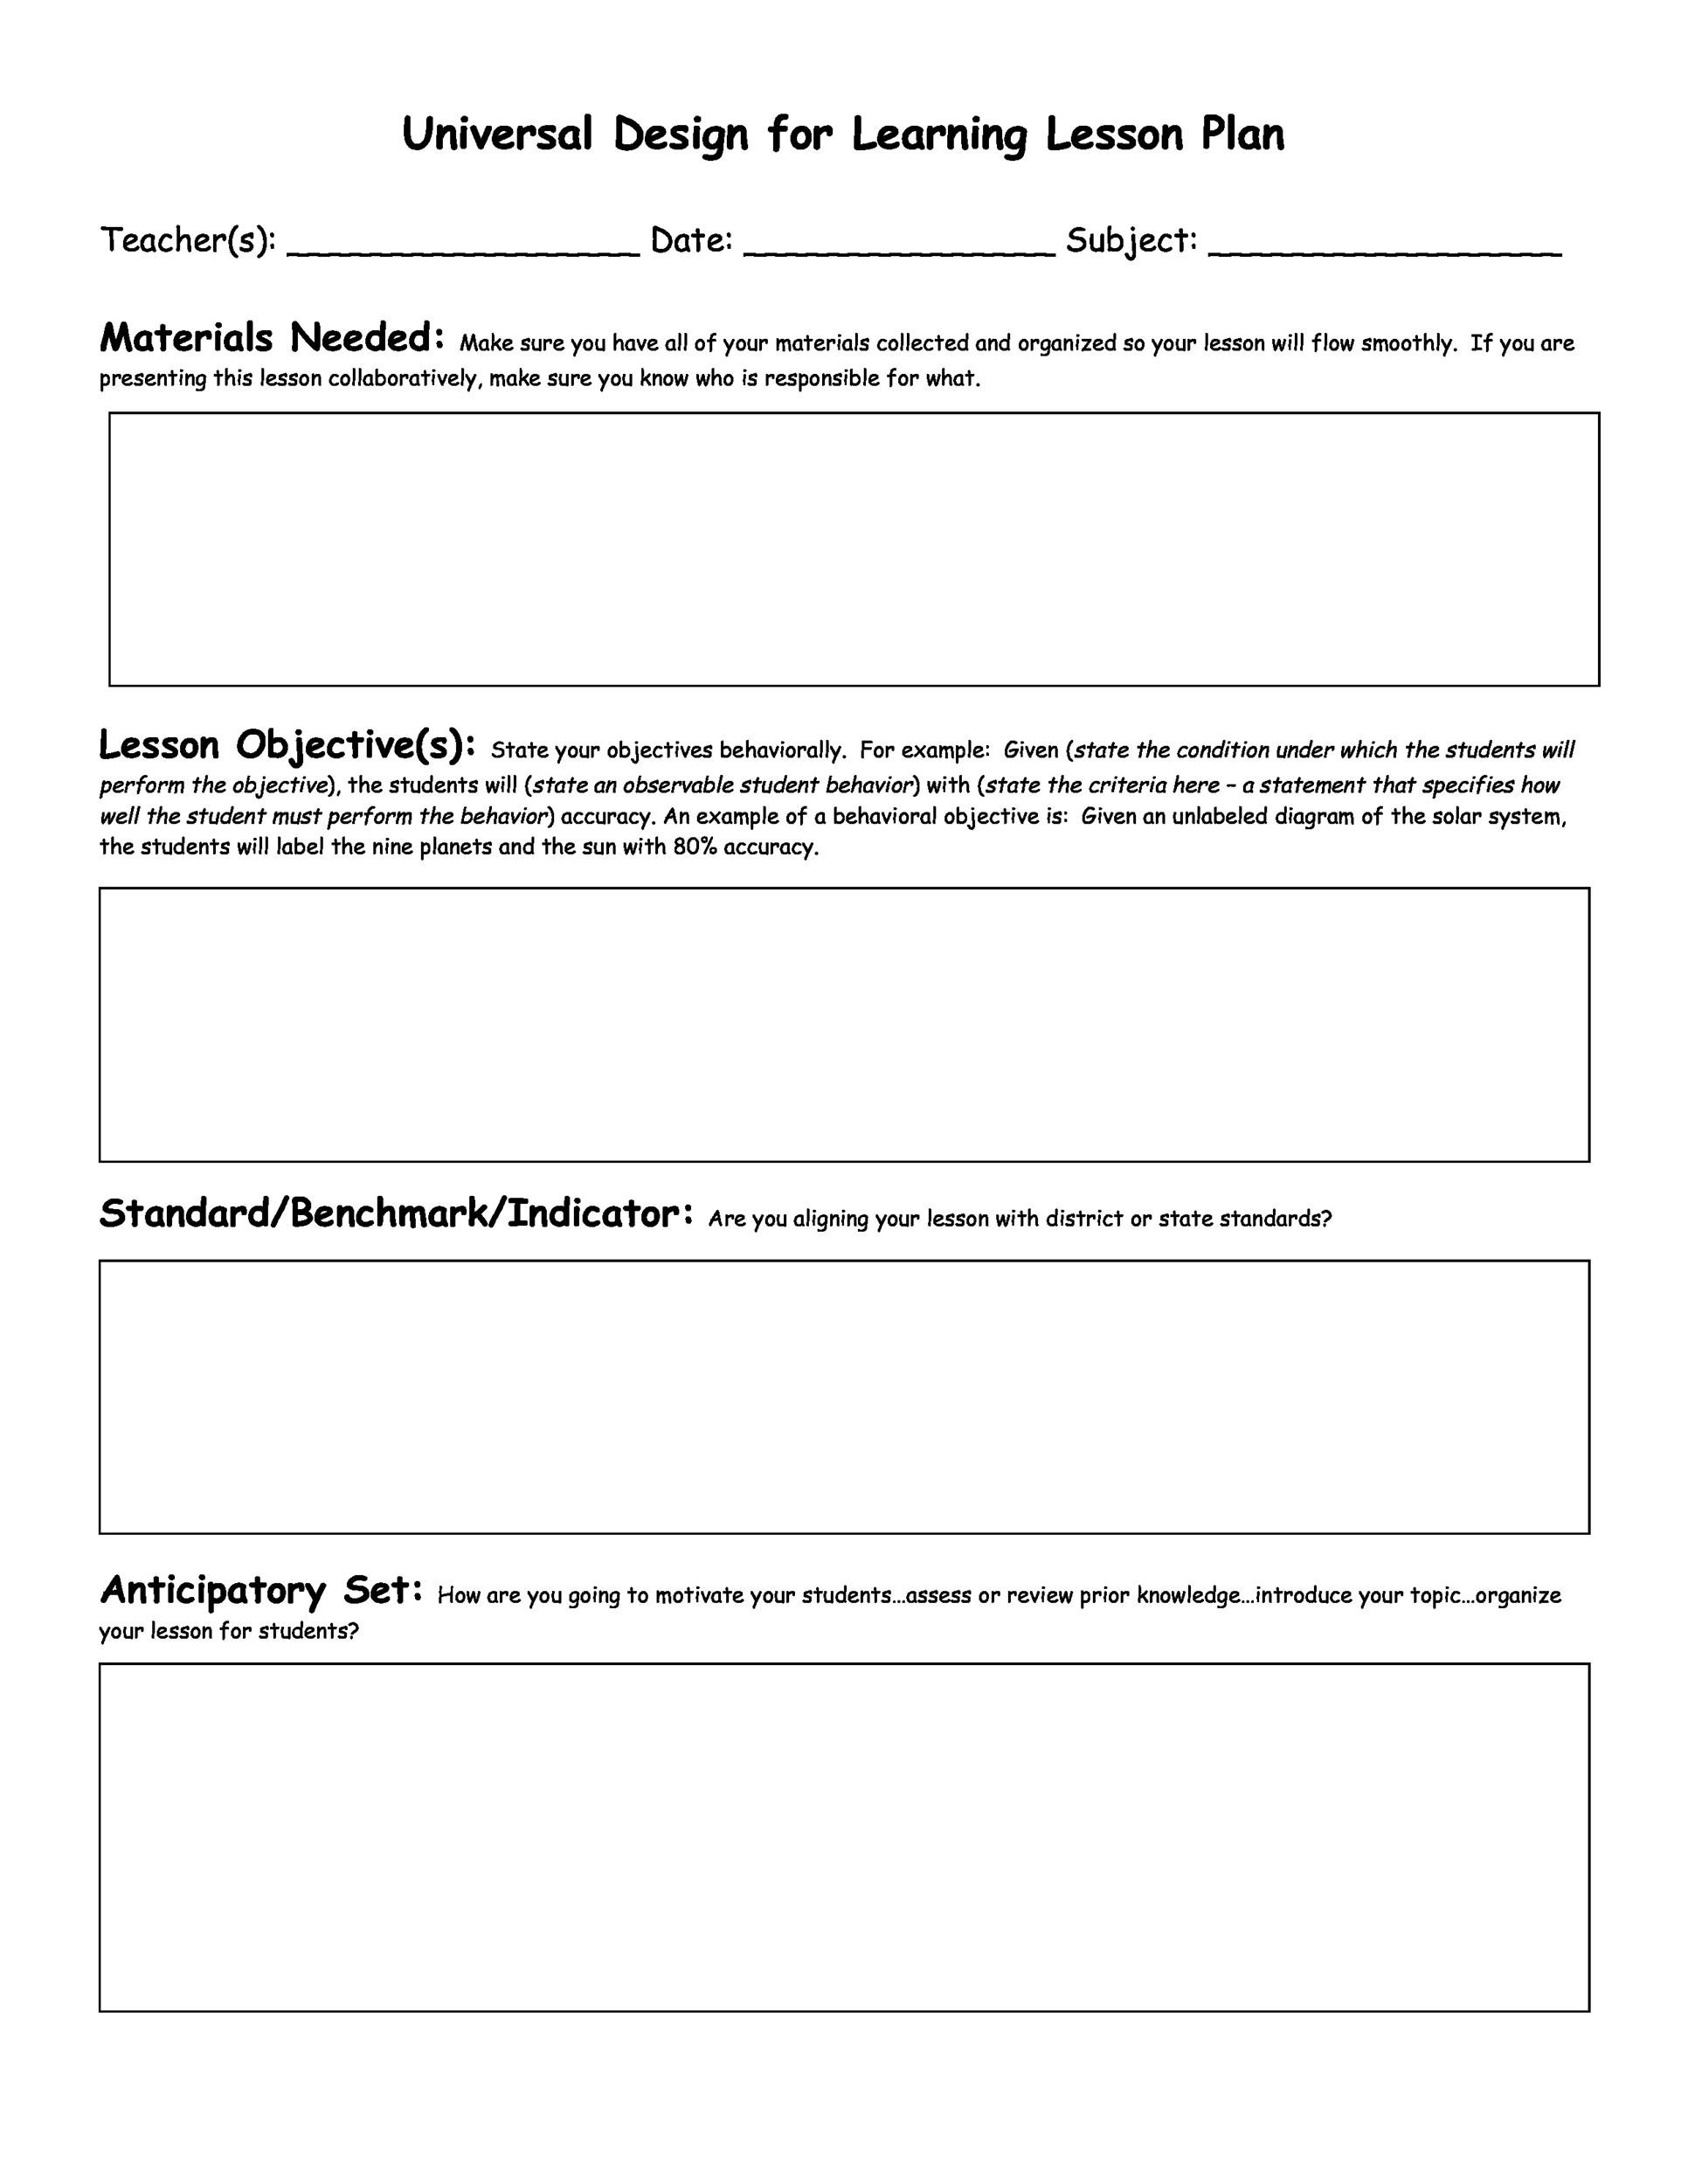 FREE Lesson Plan Templates Common Core Preschool Weekly - Printable lesson plan template for teachers